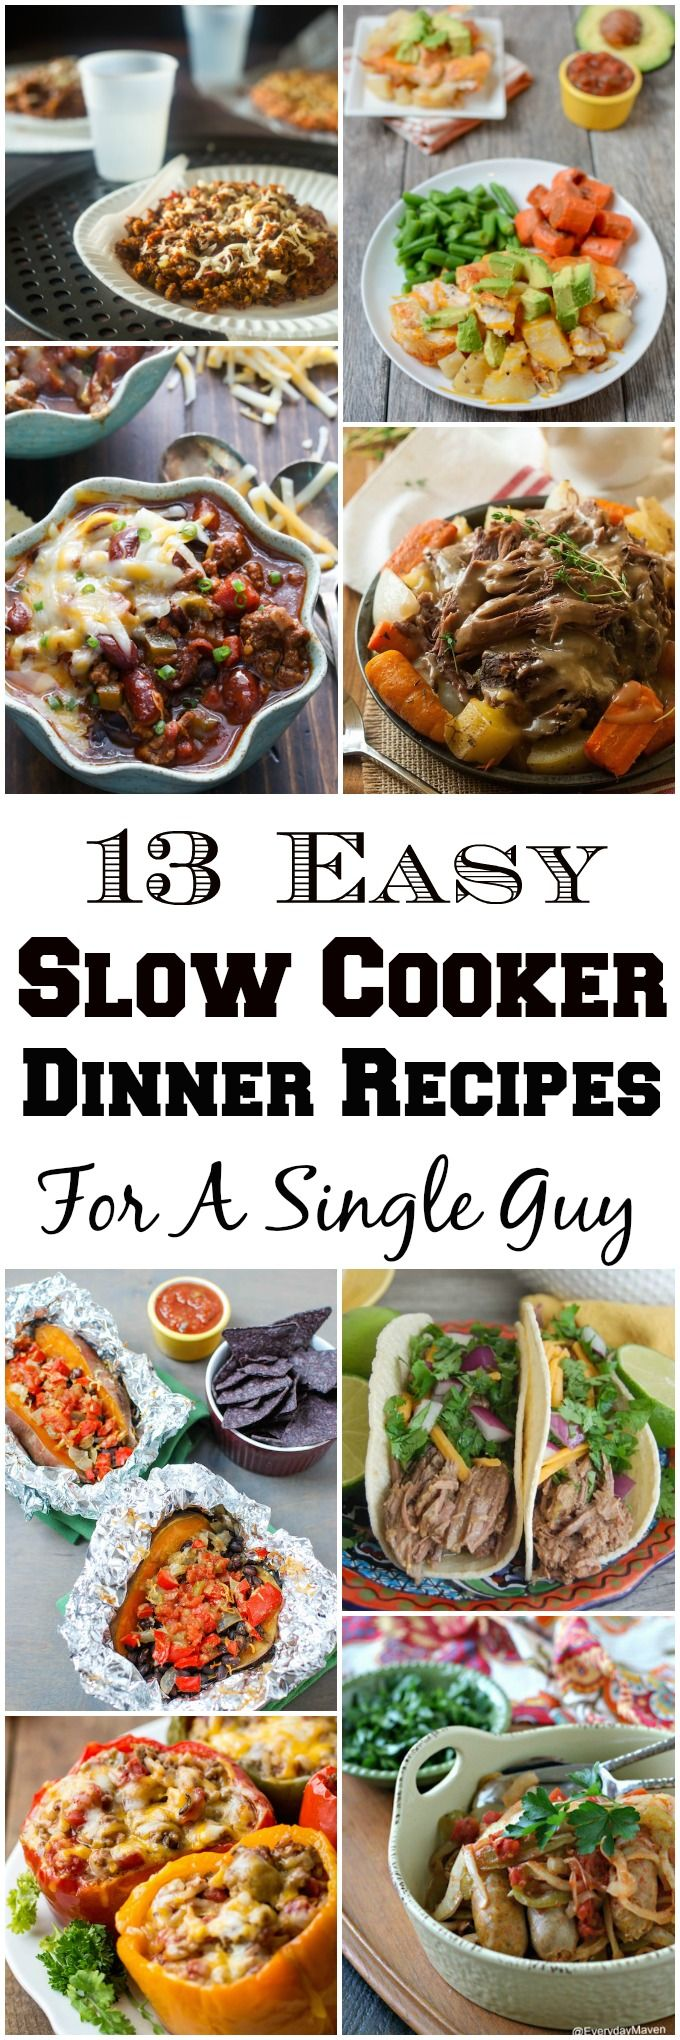 Easy slow cooker dinner recipes for a single guy pinterest these easy slow cooker dinner recipes for a single guy are hearty nutritious and easy enough for even men who dont like to cook but can handle a crockpot forumfinder Gallery